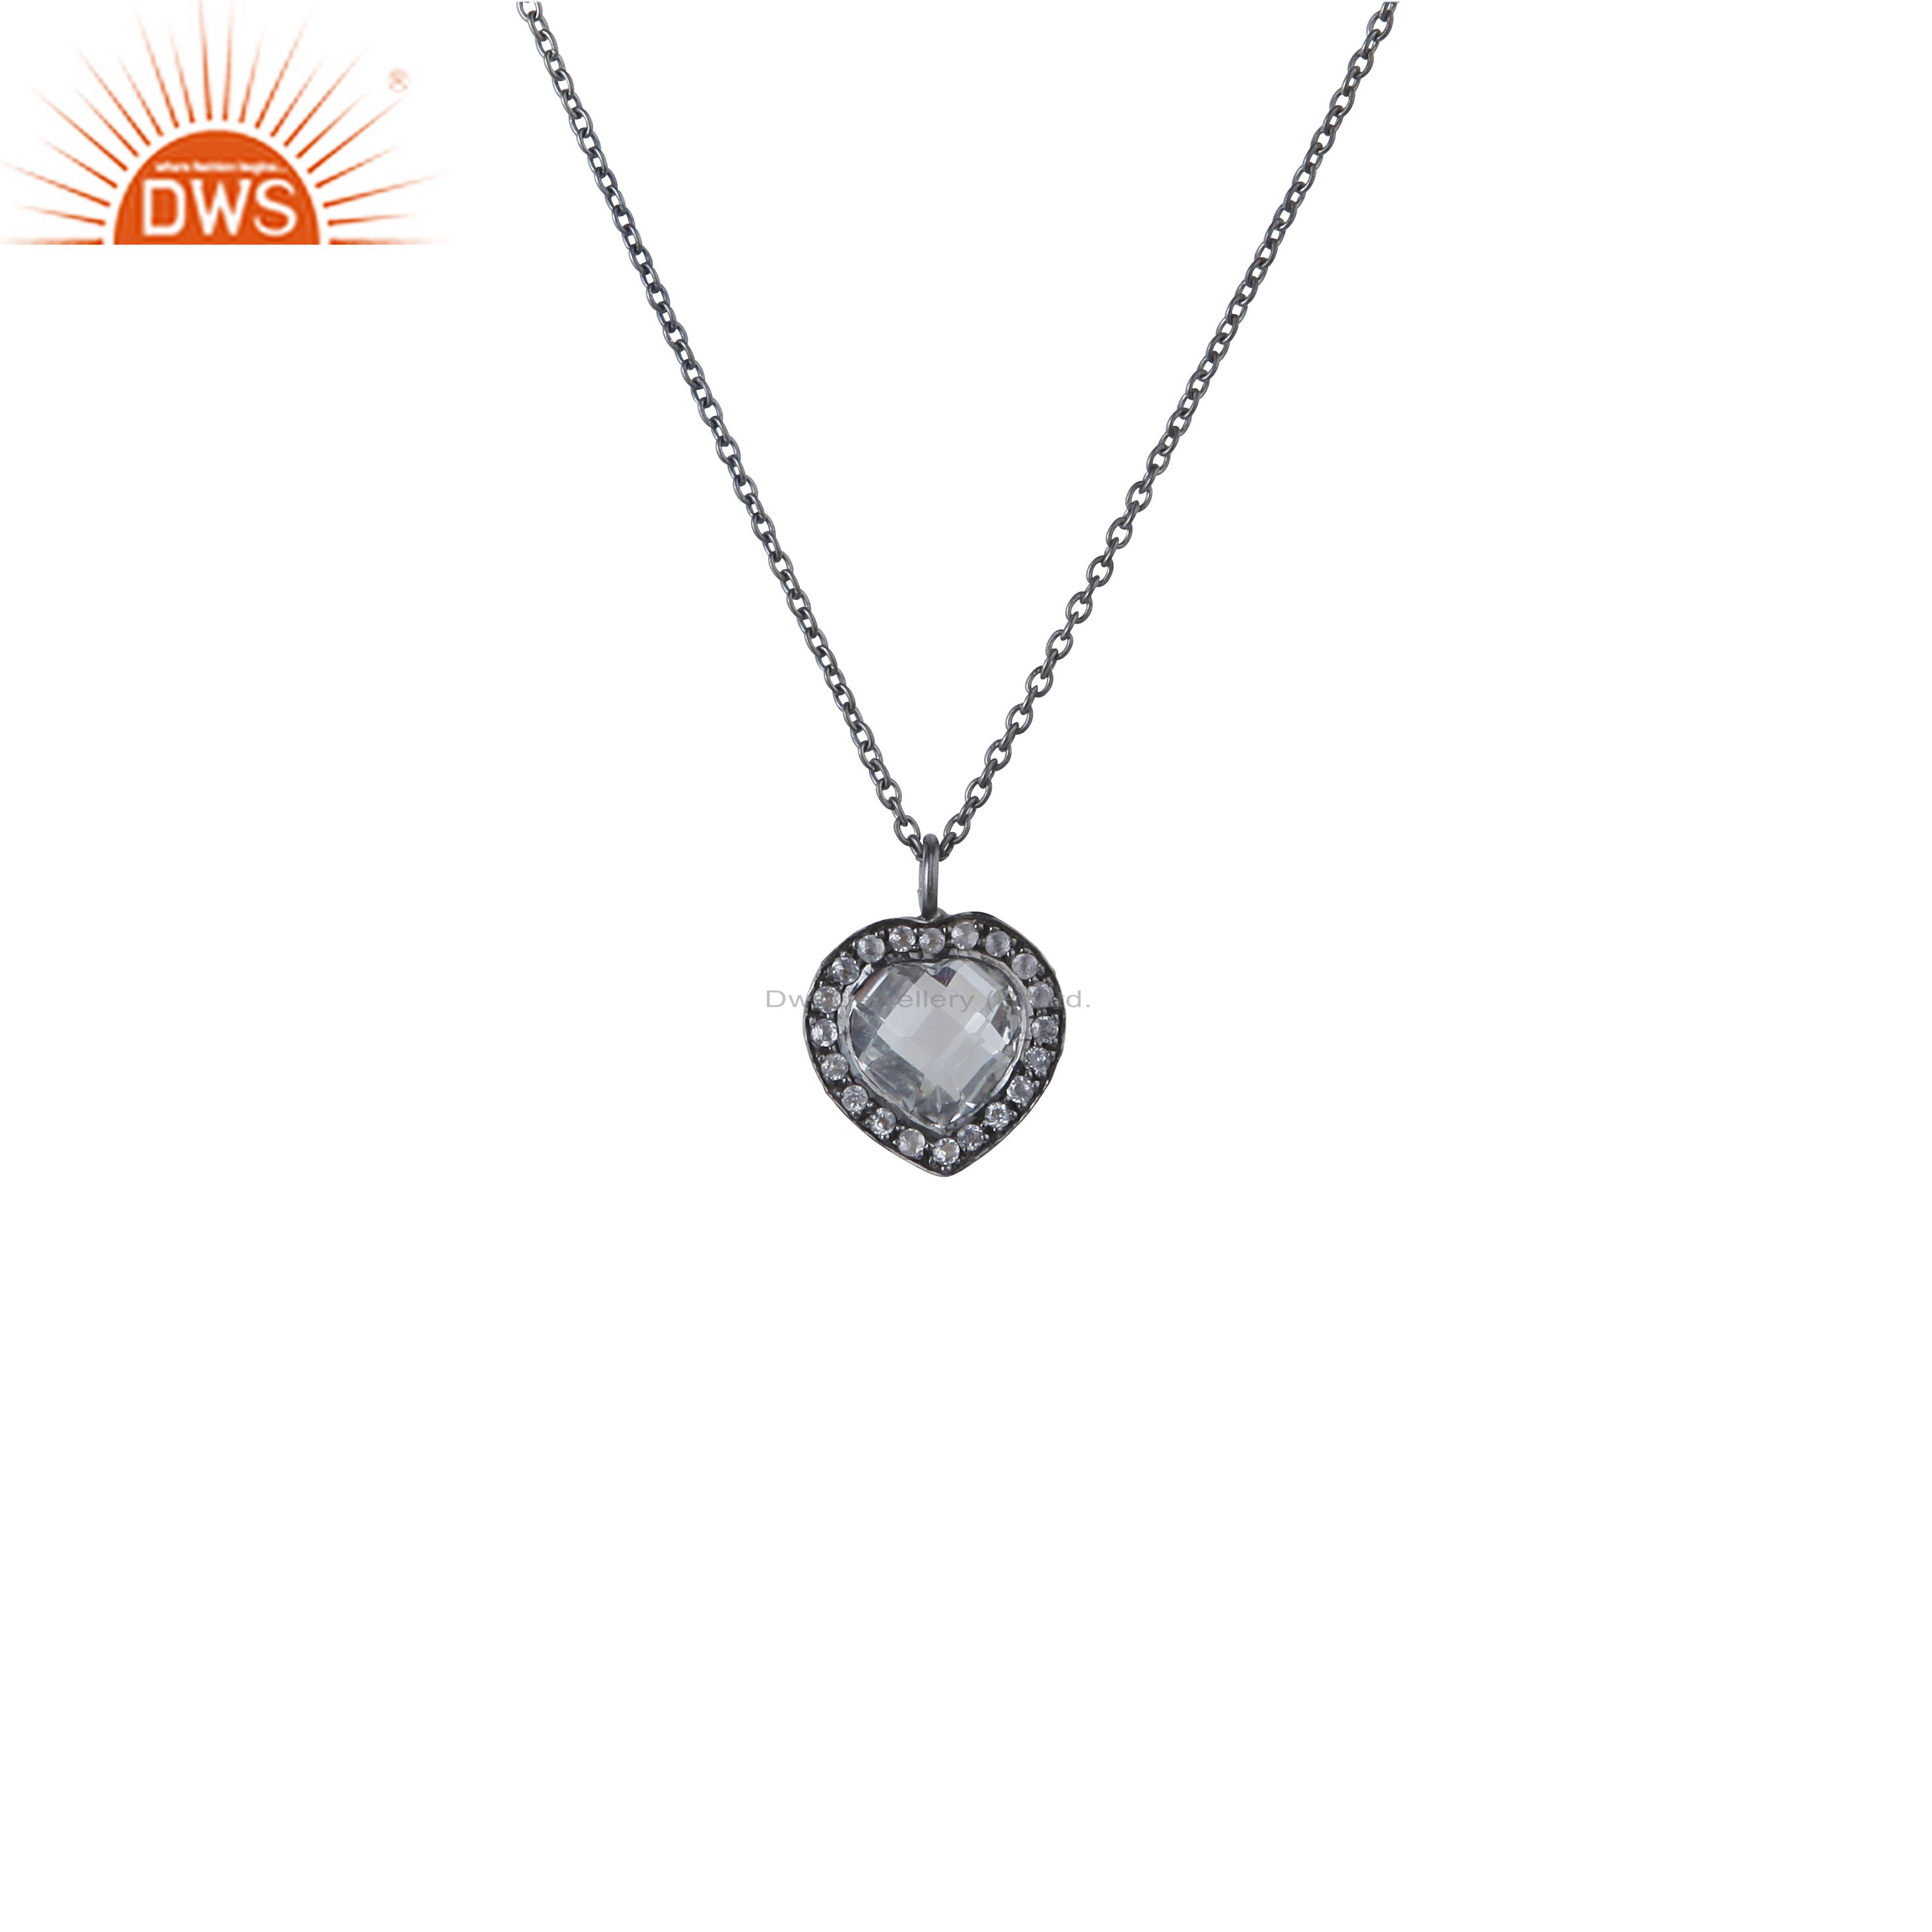 Oxidized sterling silver crystal quartz and white topaz heart pendant with chain